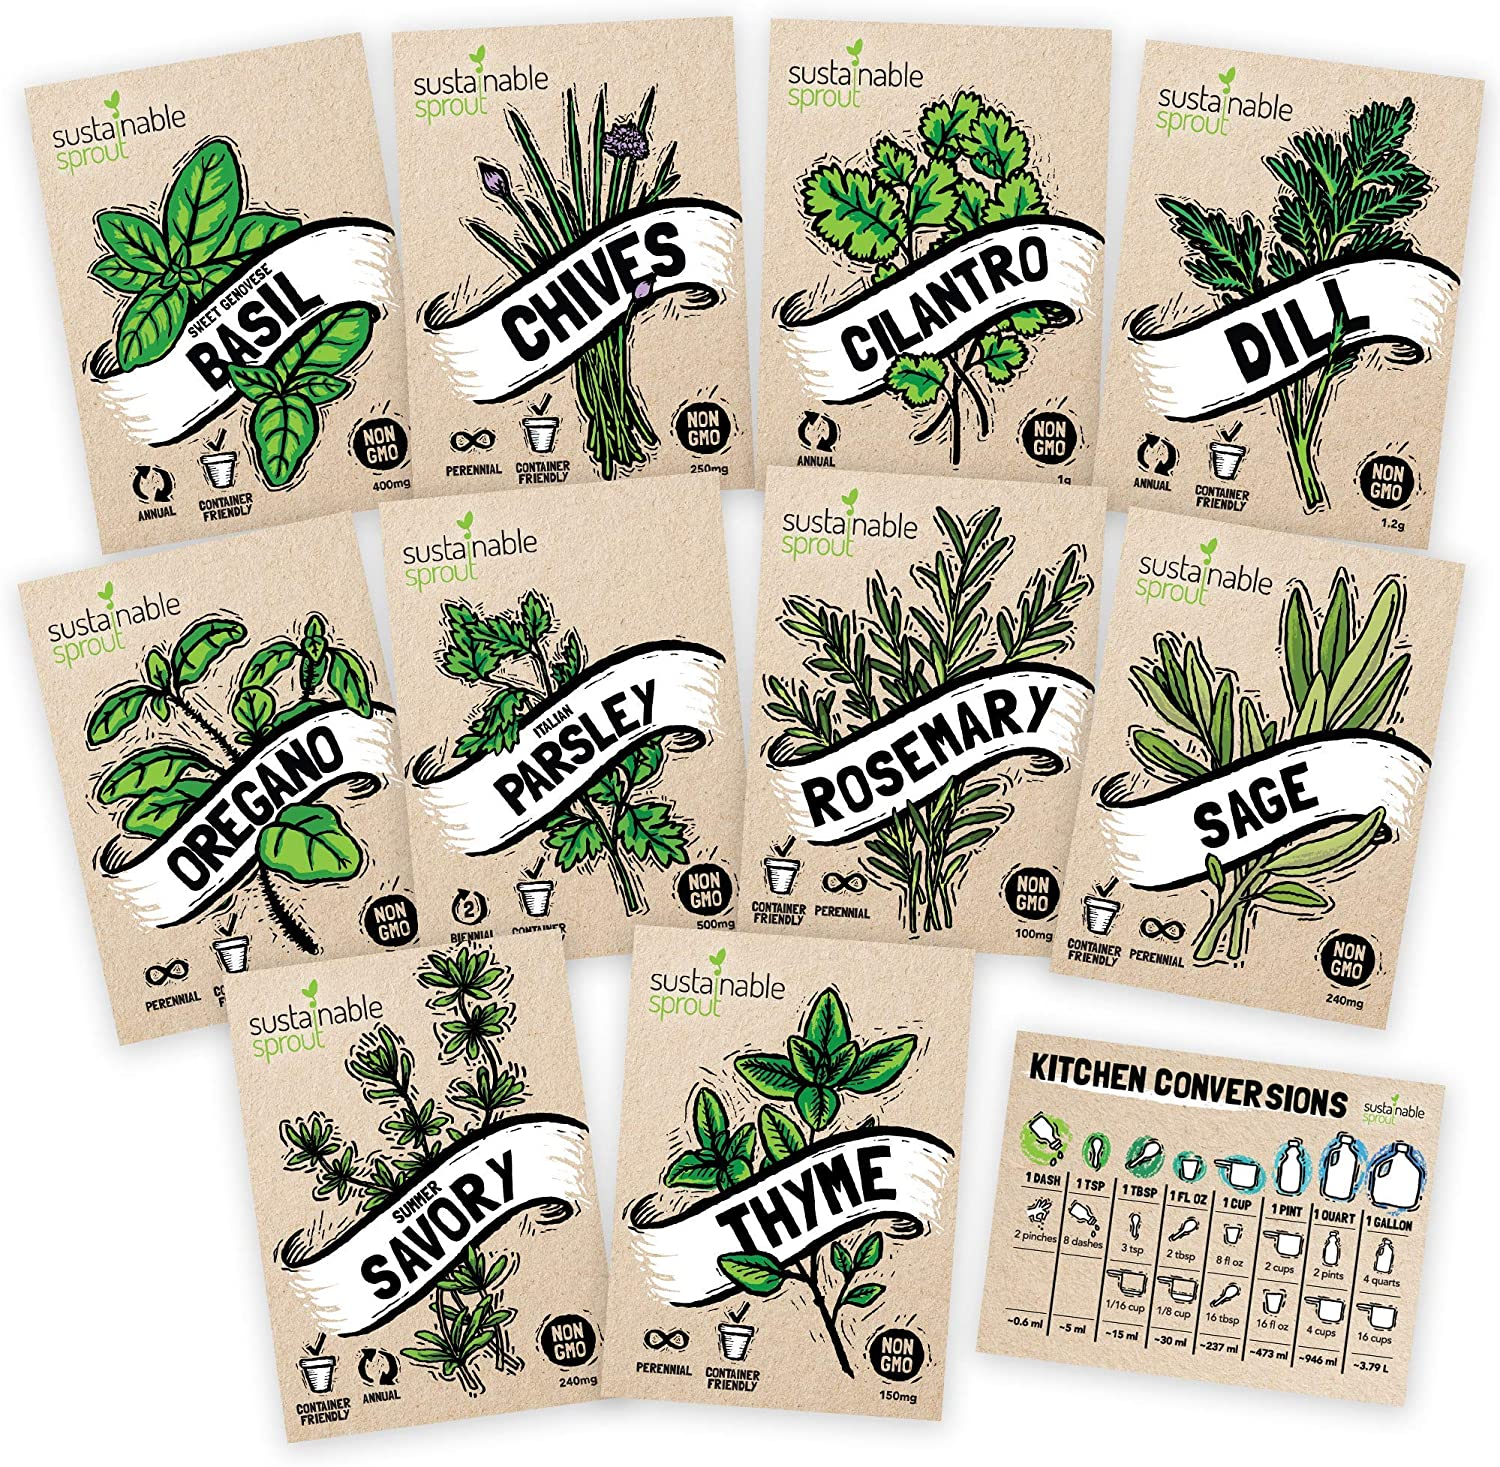 Culinary Herb Seeds 10 Pack – Over 4000 Seeds! 100% Non GMO Heirloom - Basil, Cilantro, Parsley, Chives, Thyme, Oregano, Dill, Rosemary, Sage Rosemary for Planting for Outdoor or Indoor Herb Garden